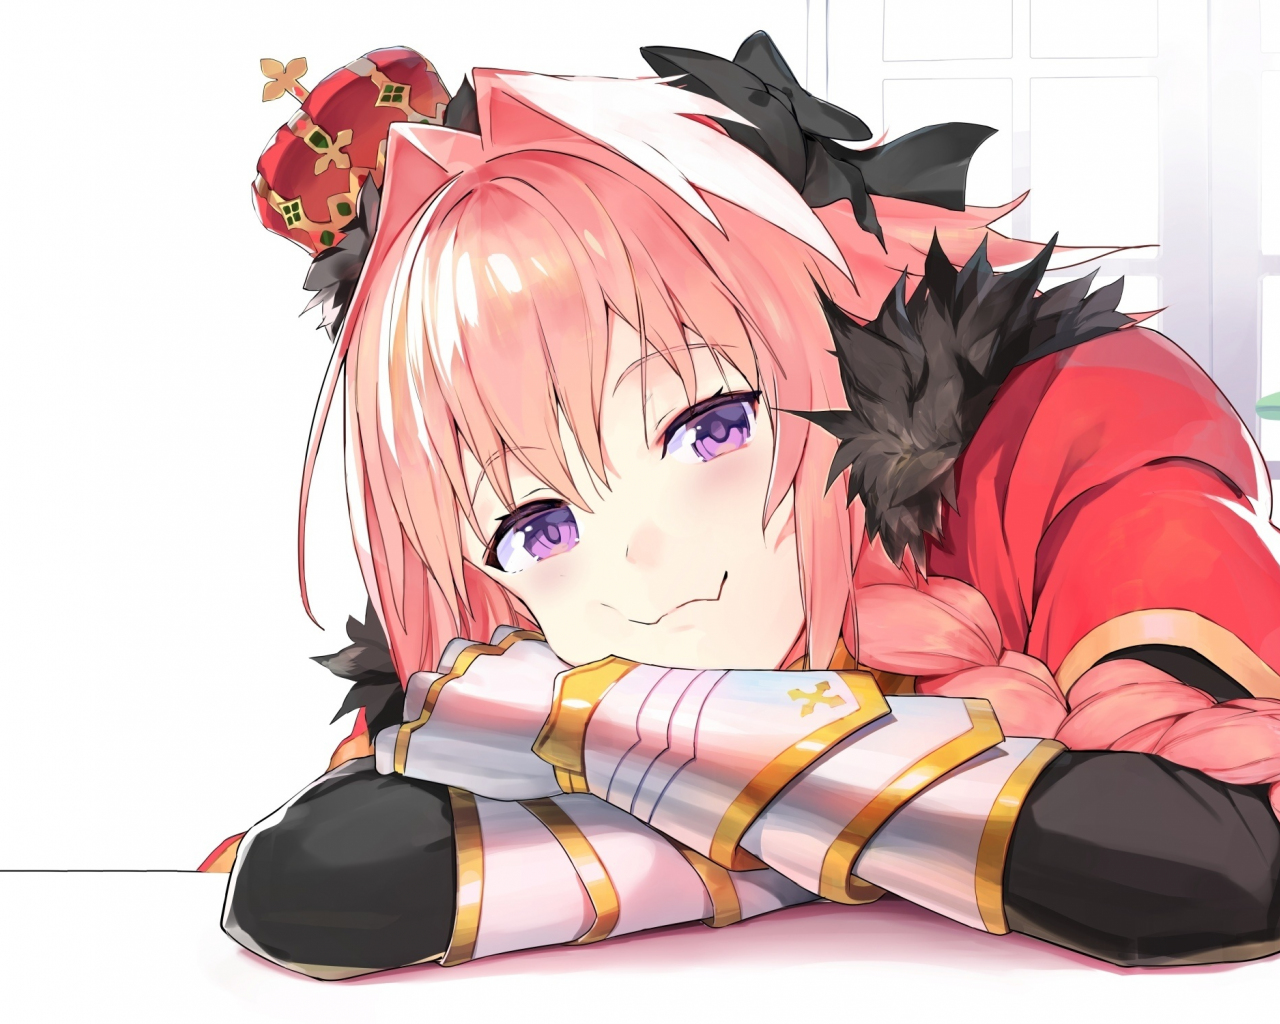 Download 1280x1024 Wallpaper Cute Smile Astolfo Fate Apocrypha Standard 5 4 Fullscreen 1280x1024 Hd Image Background 5606